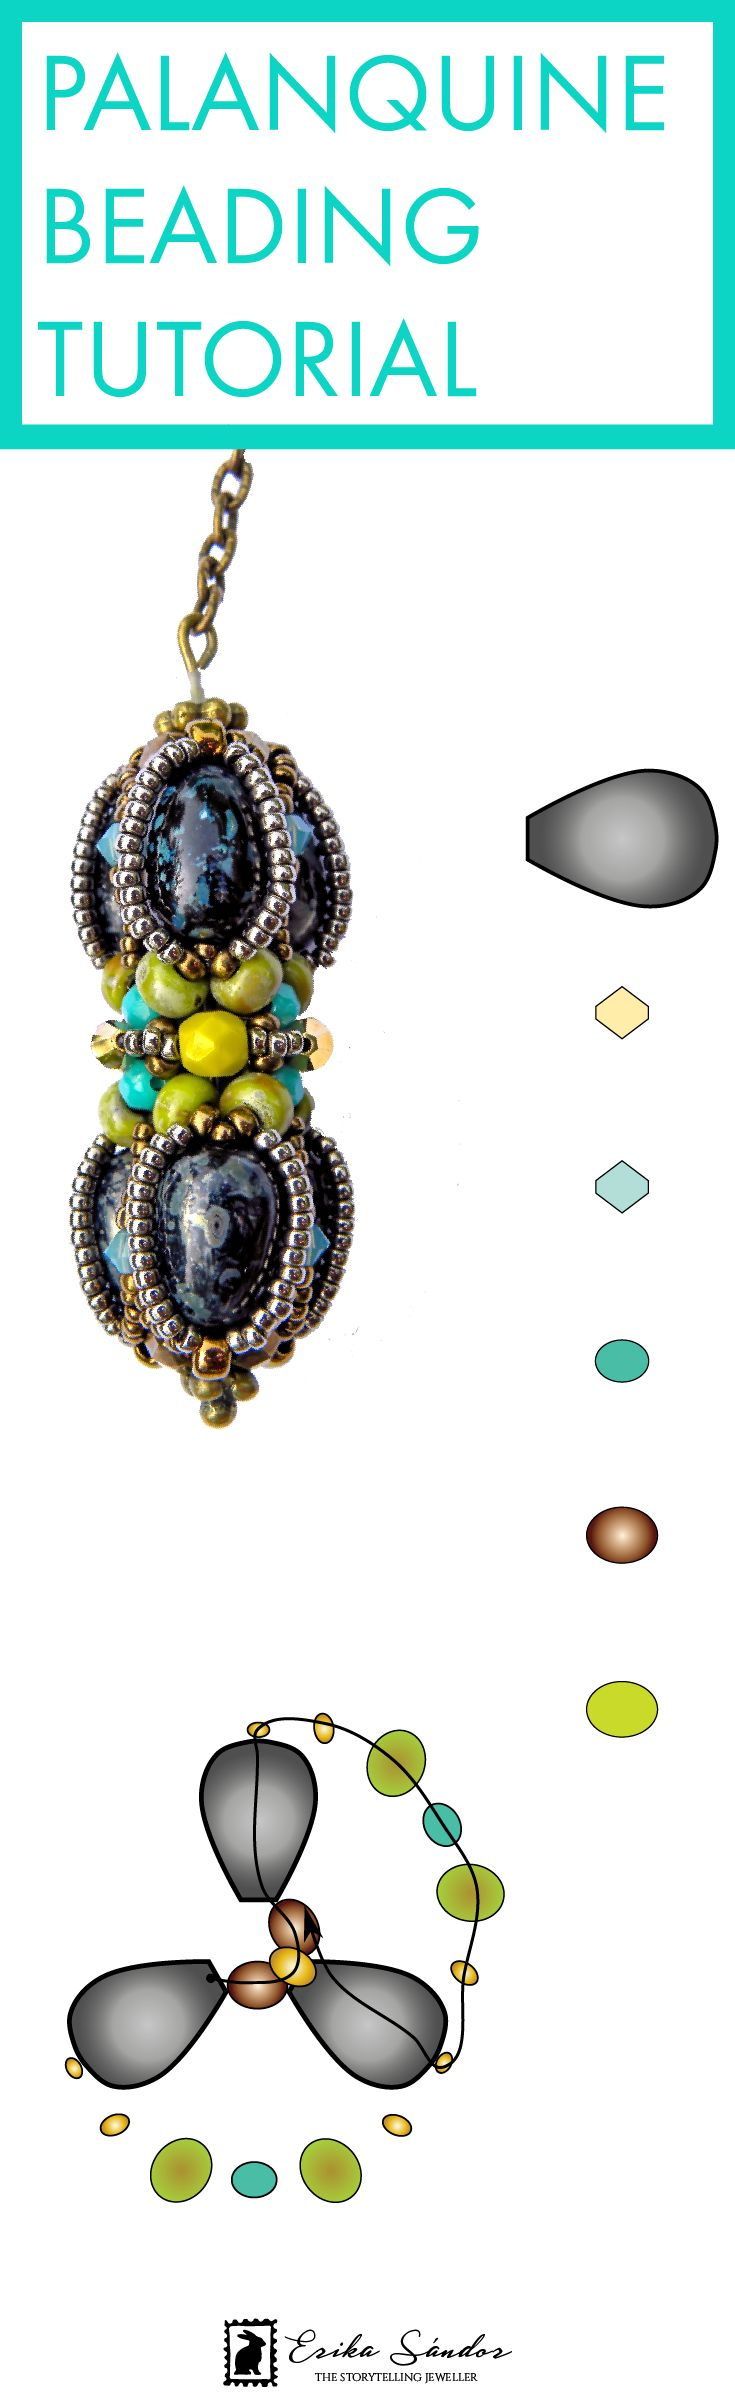 How to make a beaded bead? Beading tutorial / instructions / pattern / schema for the Palanquine beaded bead designed by Erika Sandor The Storytelling Jeweller. Beads: Czech glass drop beads, Miyuki Japanese seed beads, fire polished beads, Swarovski bicones, chain. Black, green, turquoise, avocado green necklace or earrings. Made in Amsterdam. Learn beading / beadweaving.